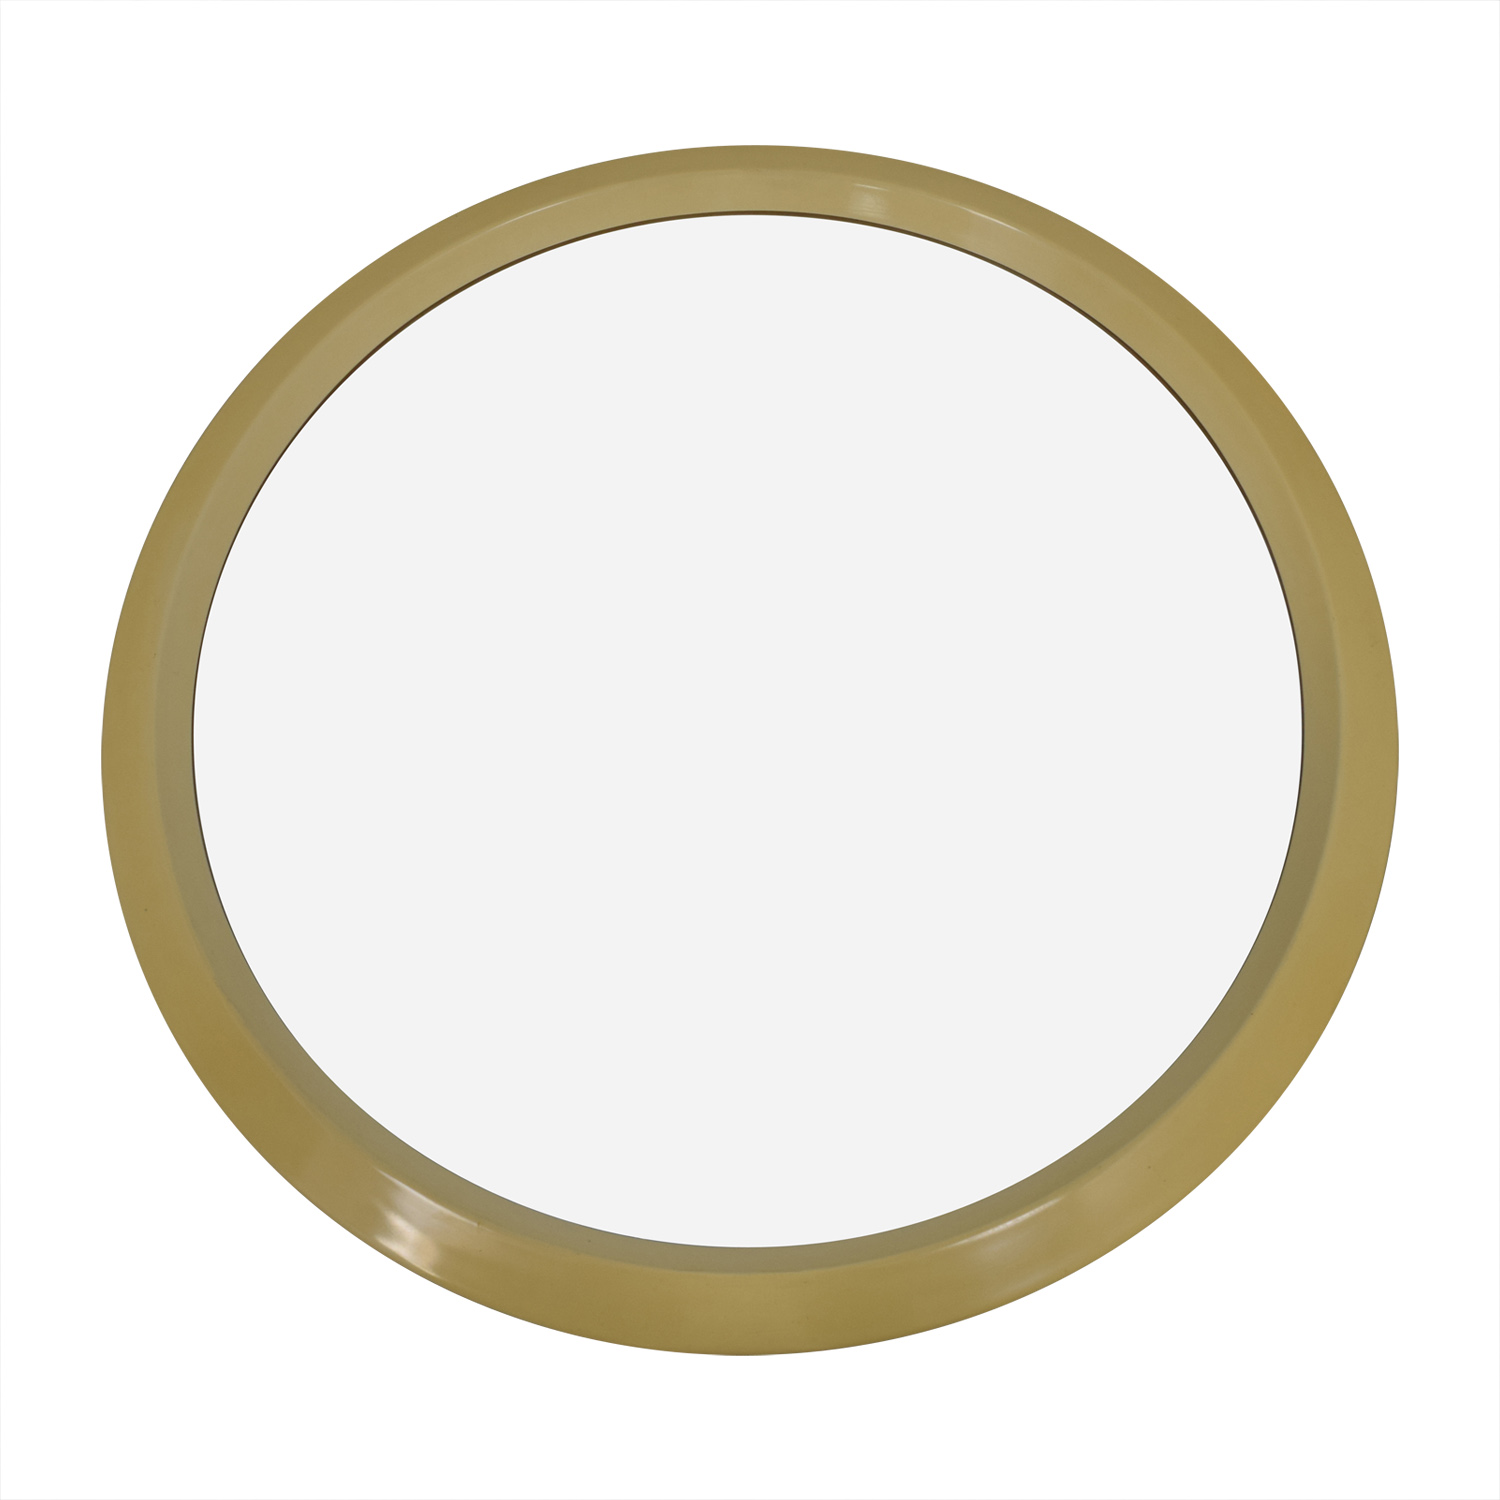 Lane Lane Cream Round Wall Mirror on sale